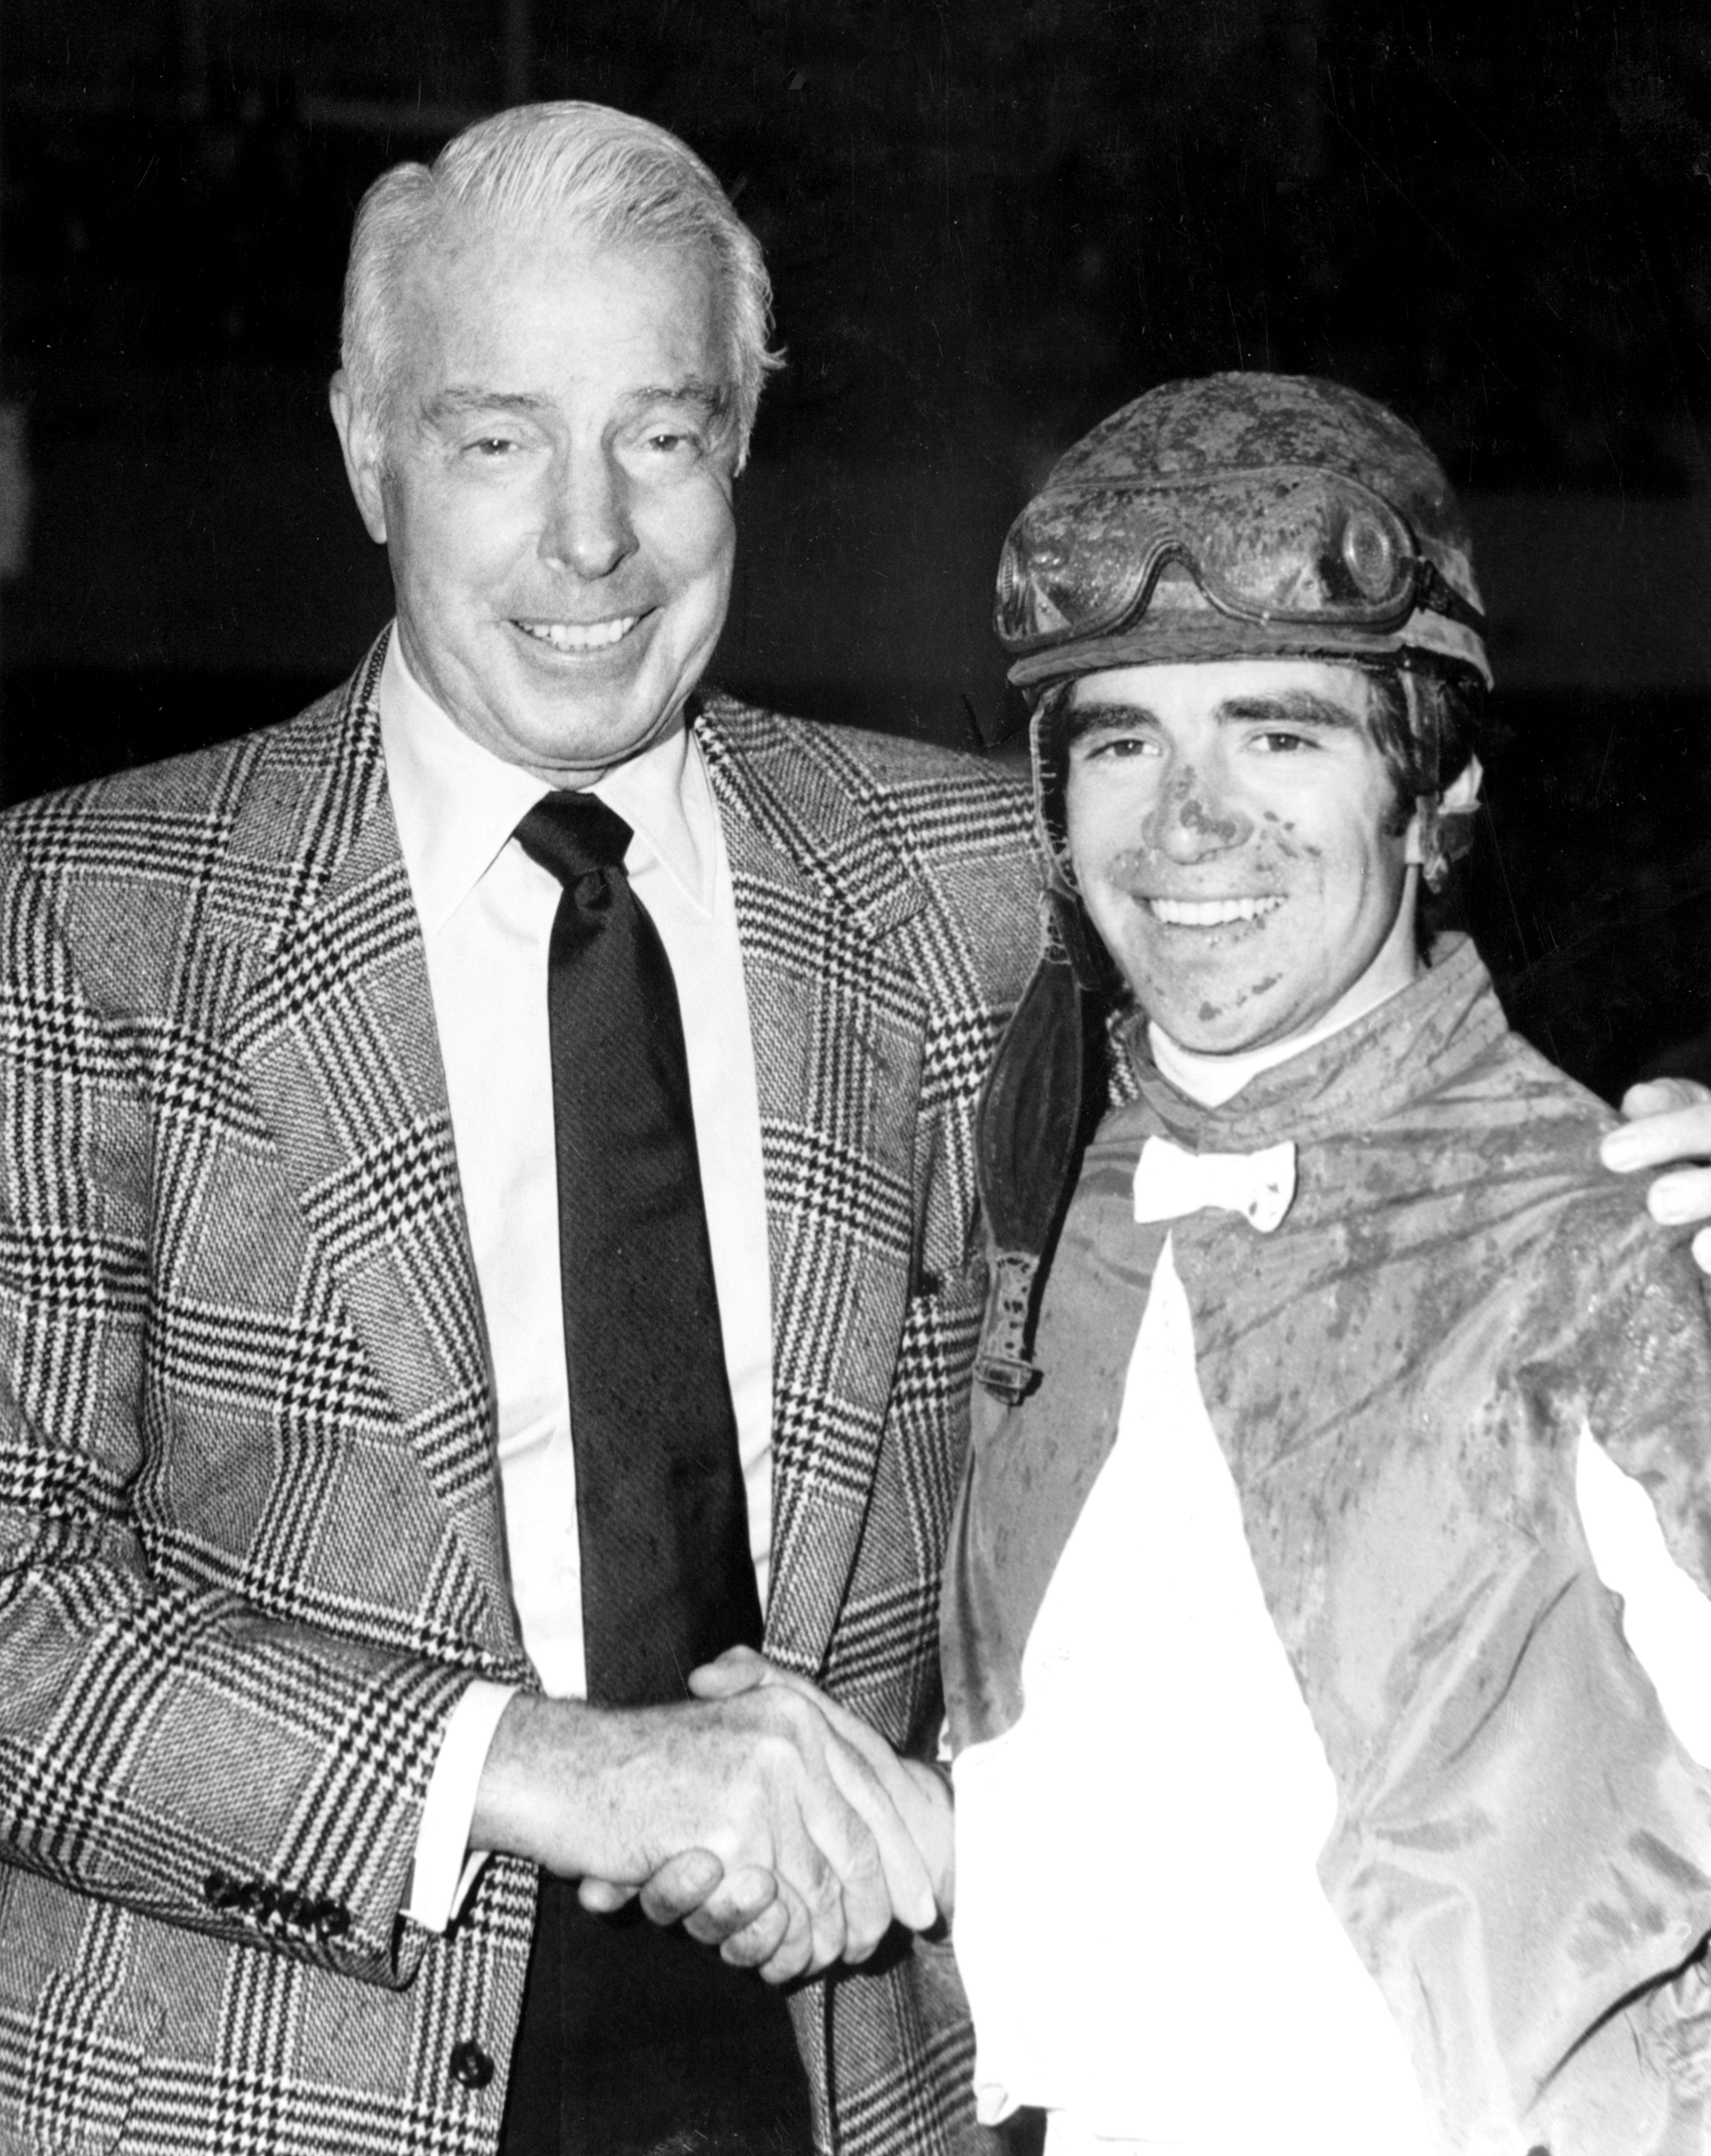 Darrel McHargue with Joe DiMaggio (Keeneland Library Thoroughbred Times Collection)